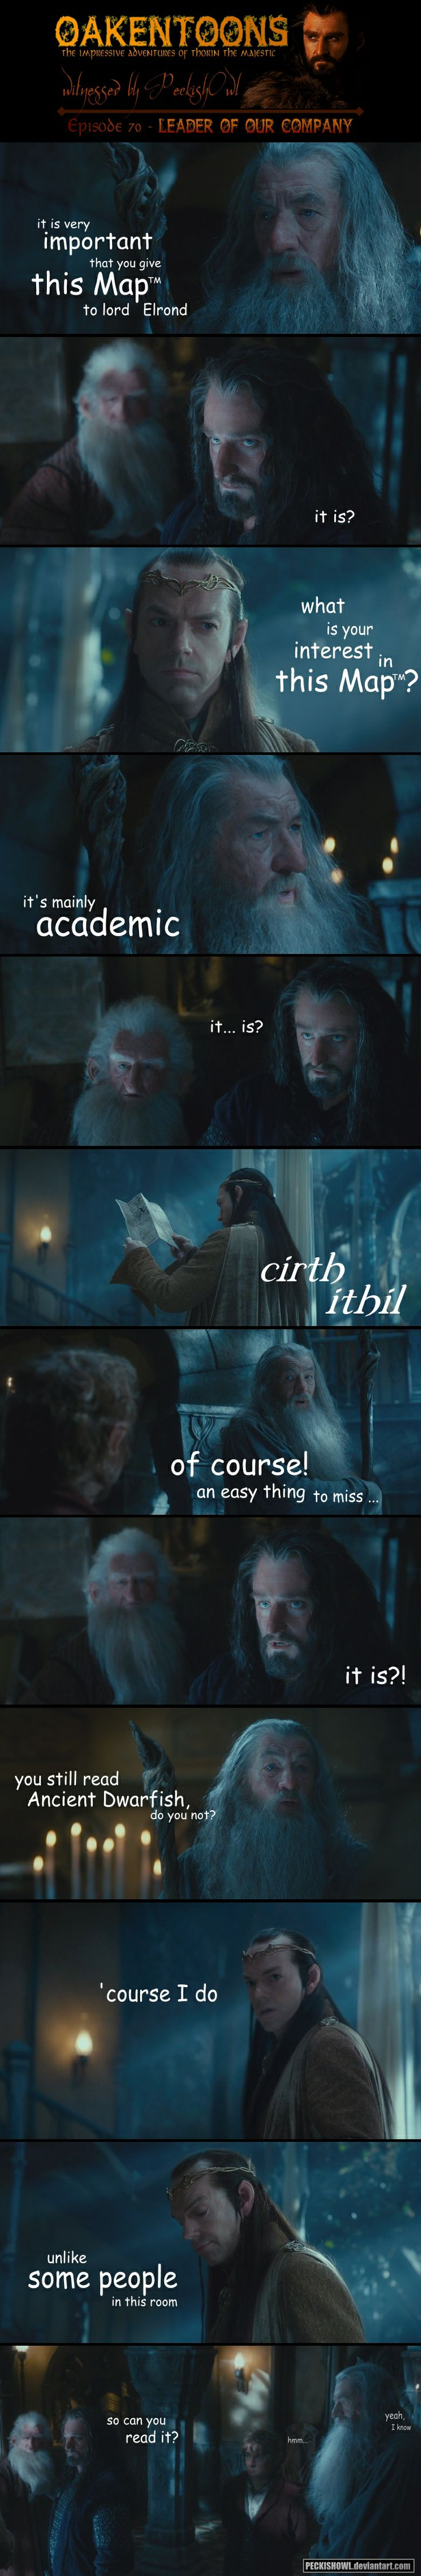 22 best ideas about the hobbit lotr funnies inspiration taken from the wonderful essay by dark jackal concerning the ways of oakentoon special leader of our company